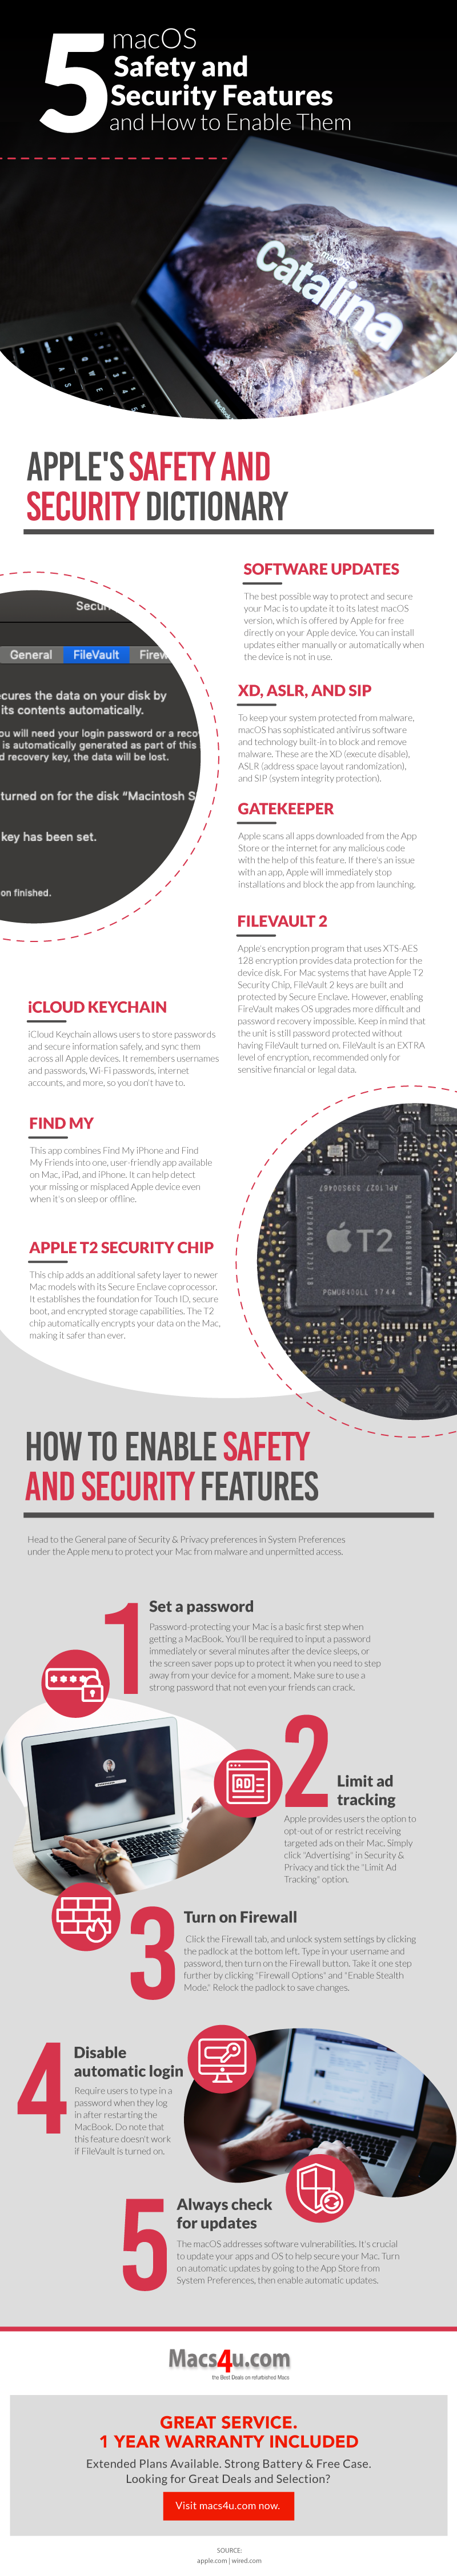 5 Macos Safety and Security Features and How to Enable Them #infographic